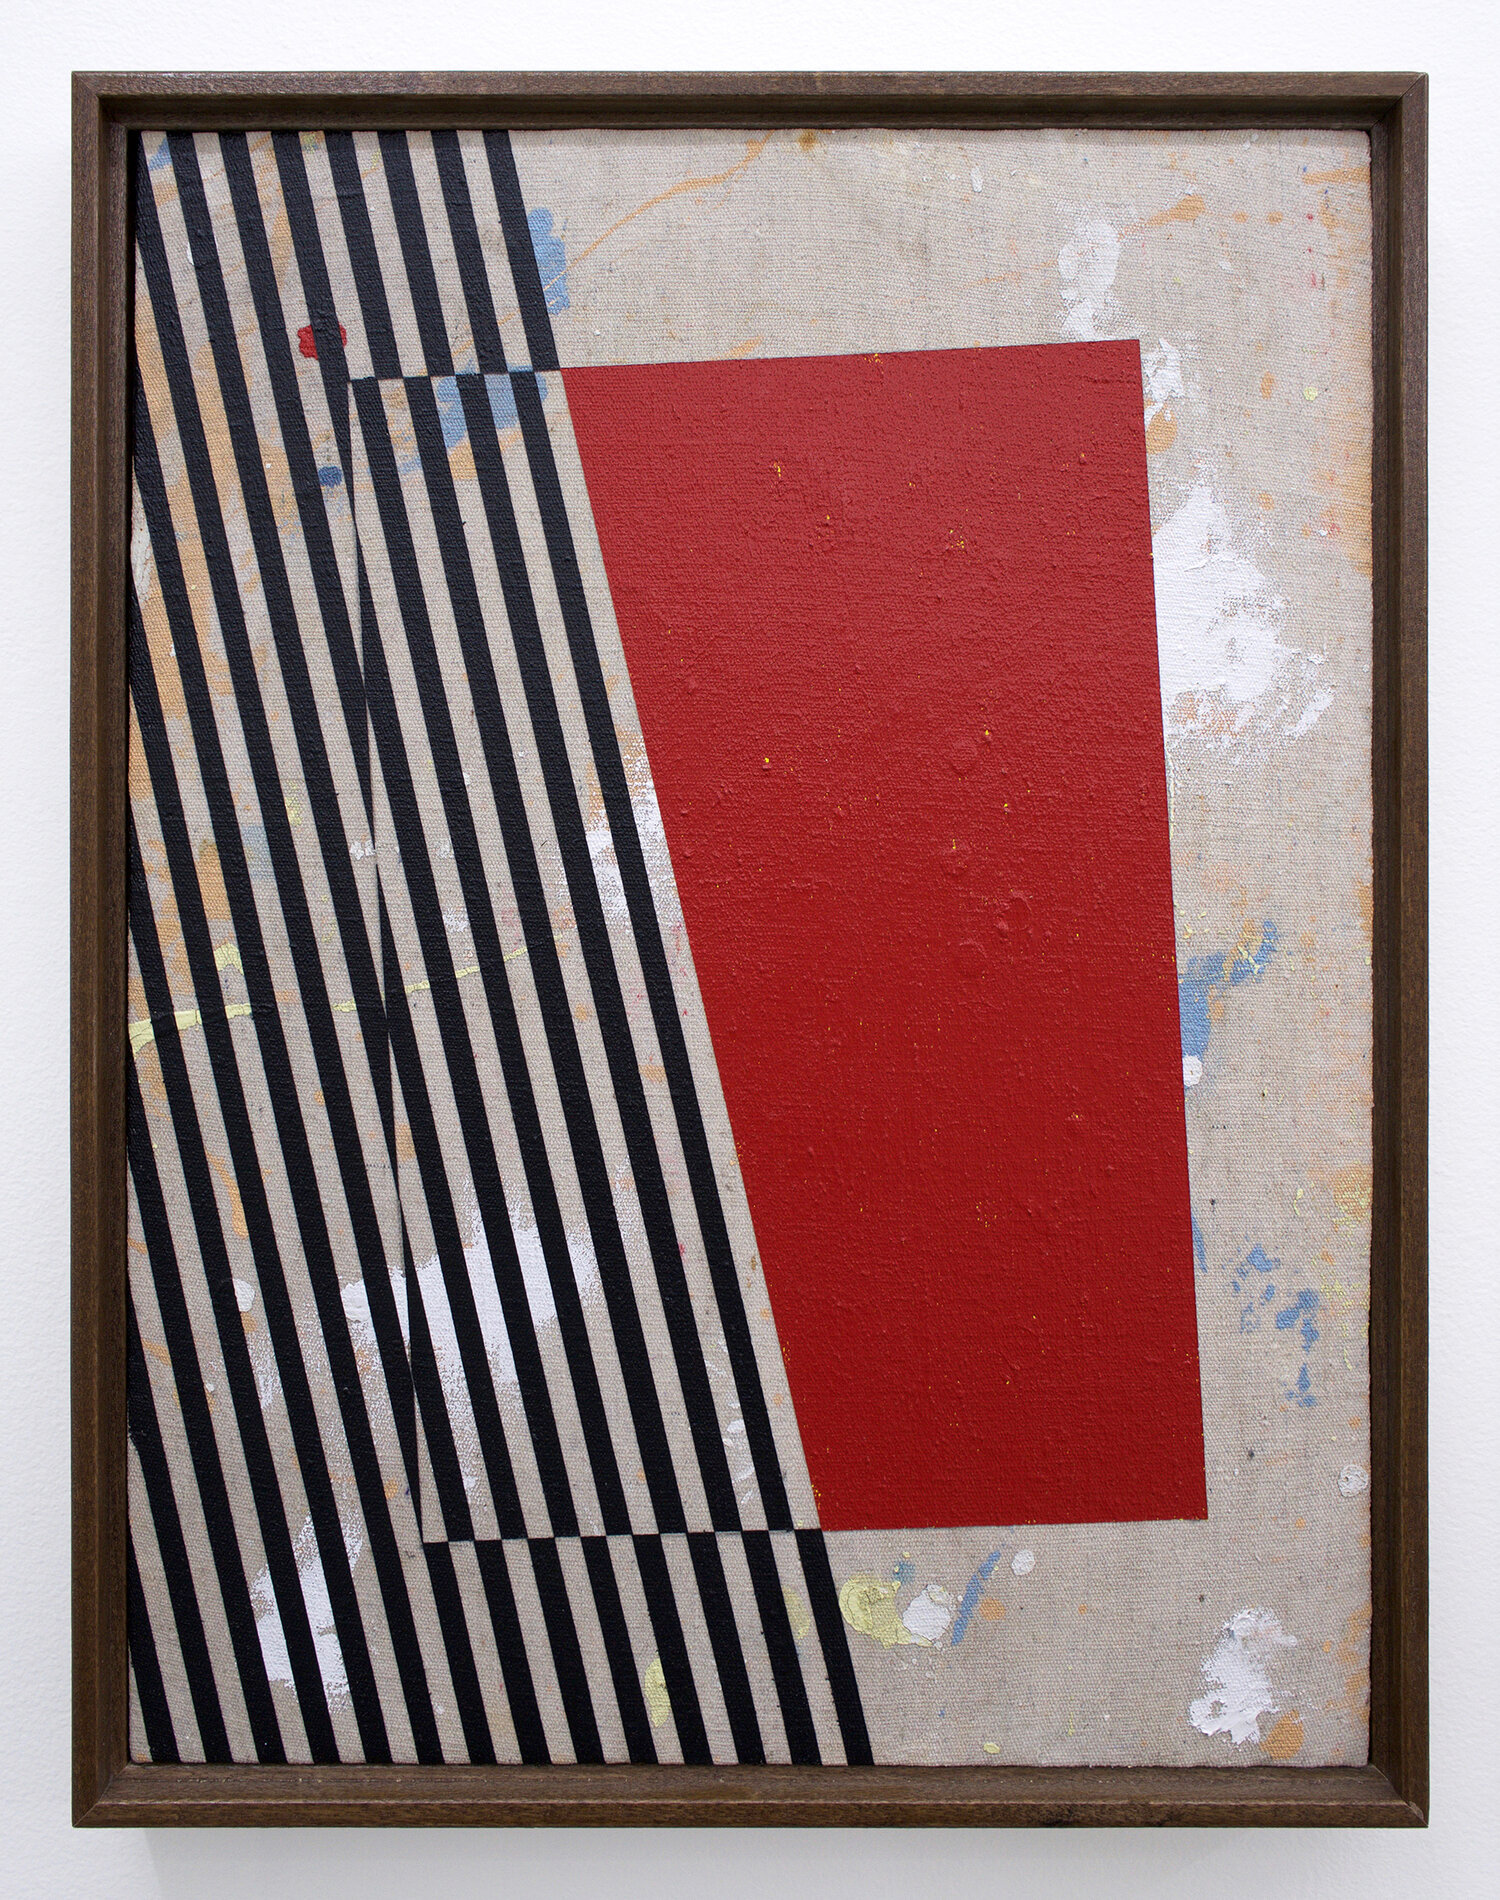 """JOHNNY ABRAHAMS Untitled (Small Red), 2019 acrylic on canvas, 17"""" x 13"""" (framed)"""